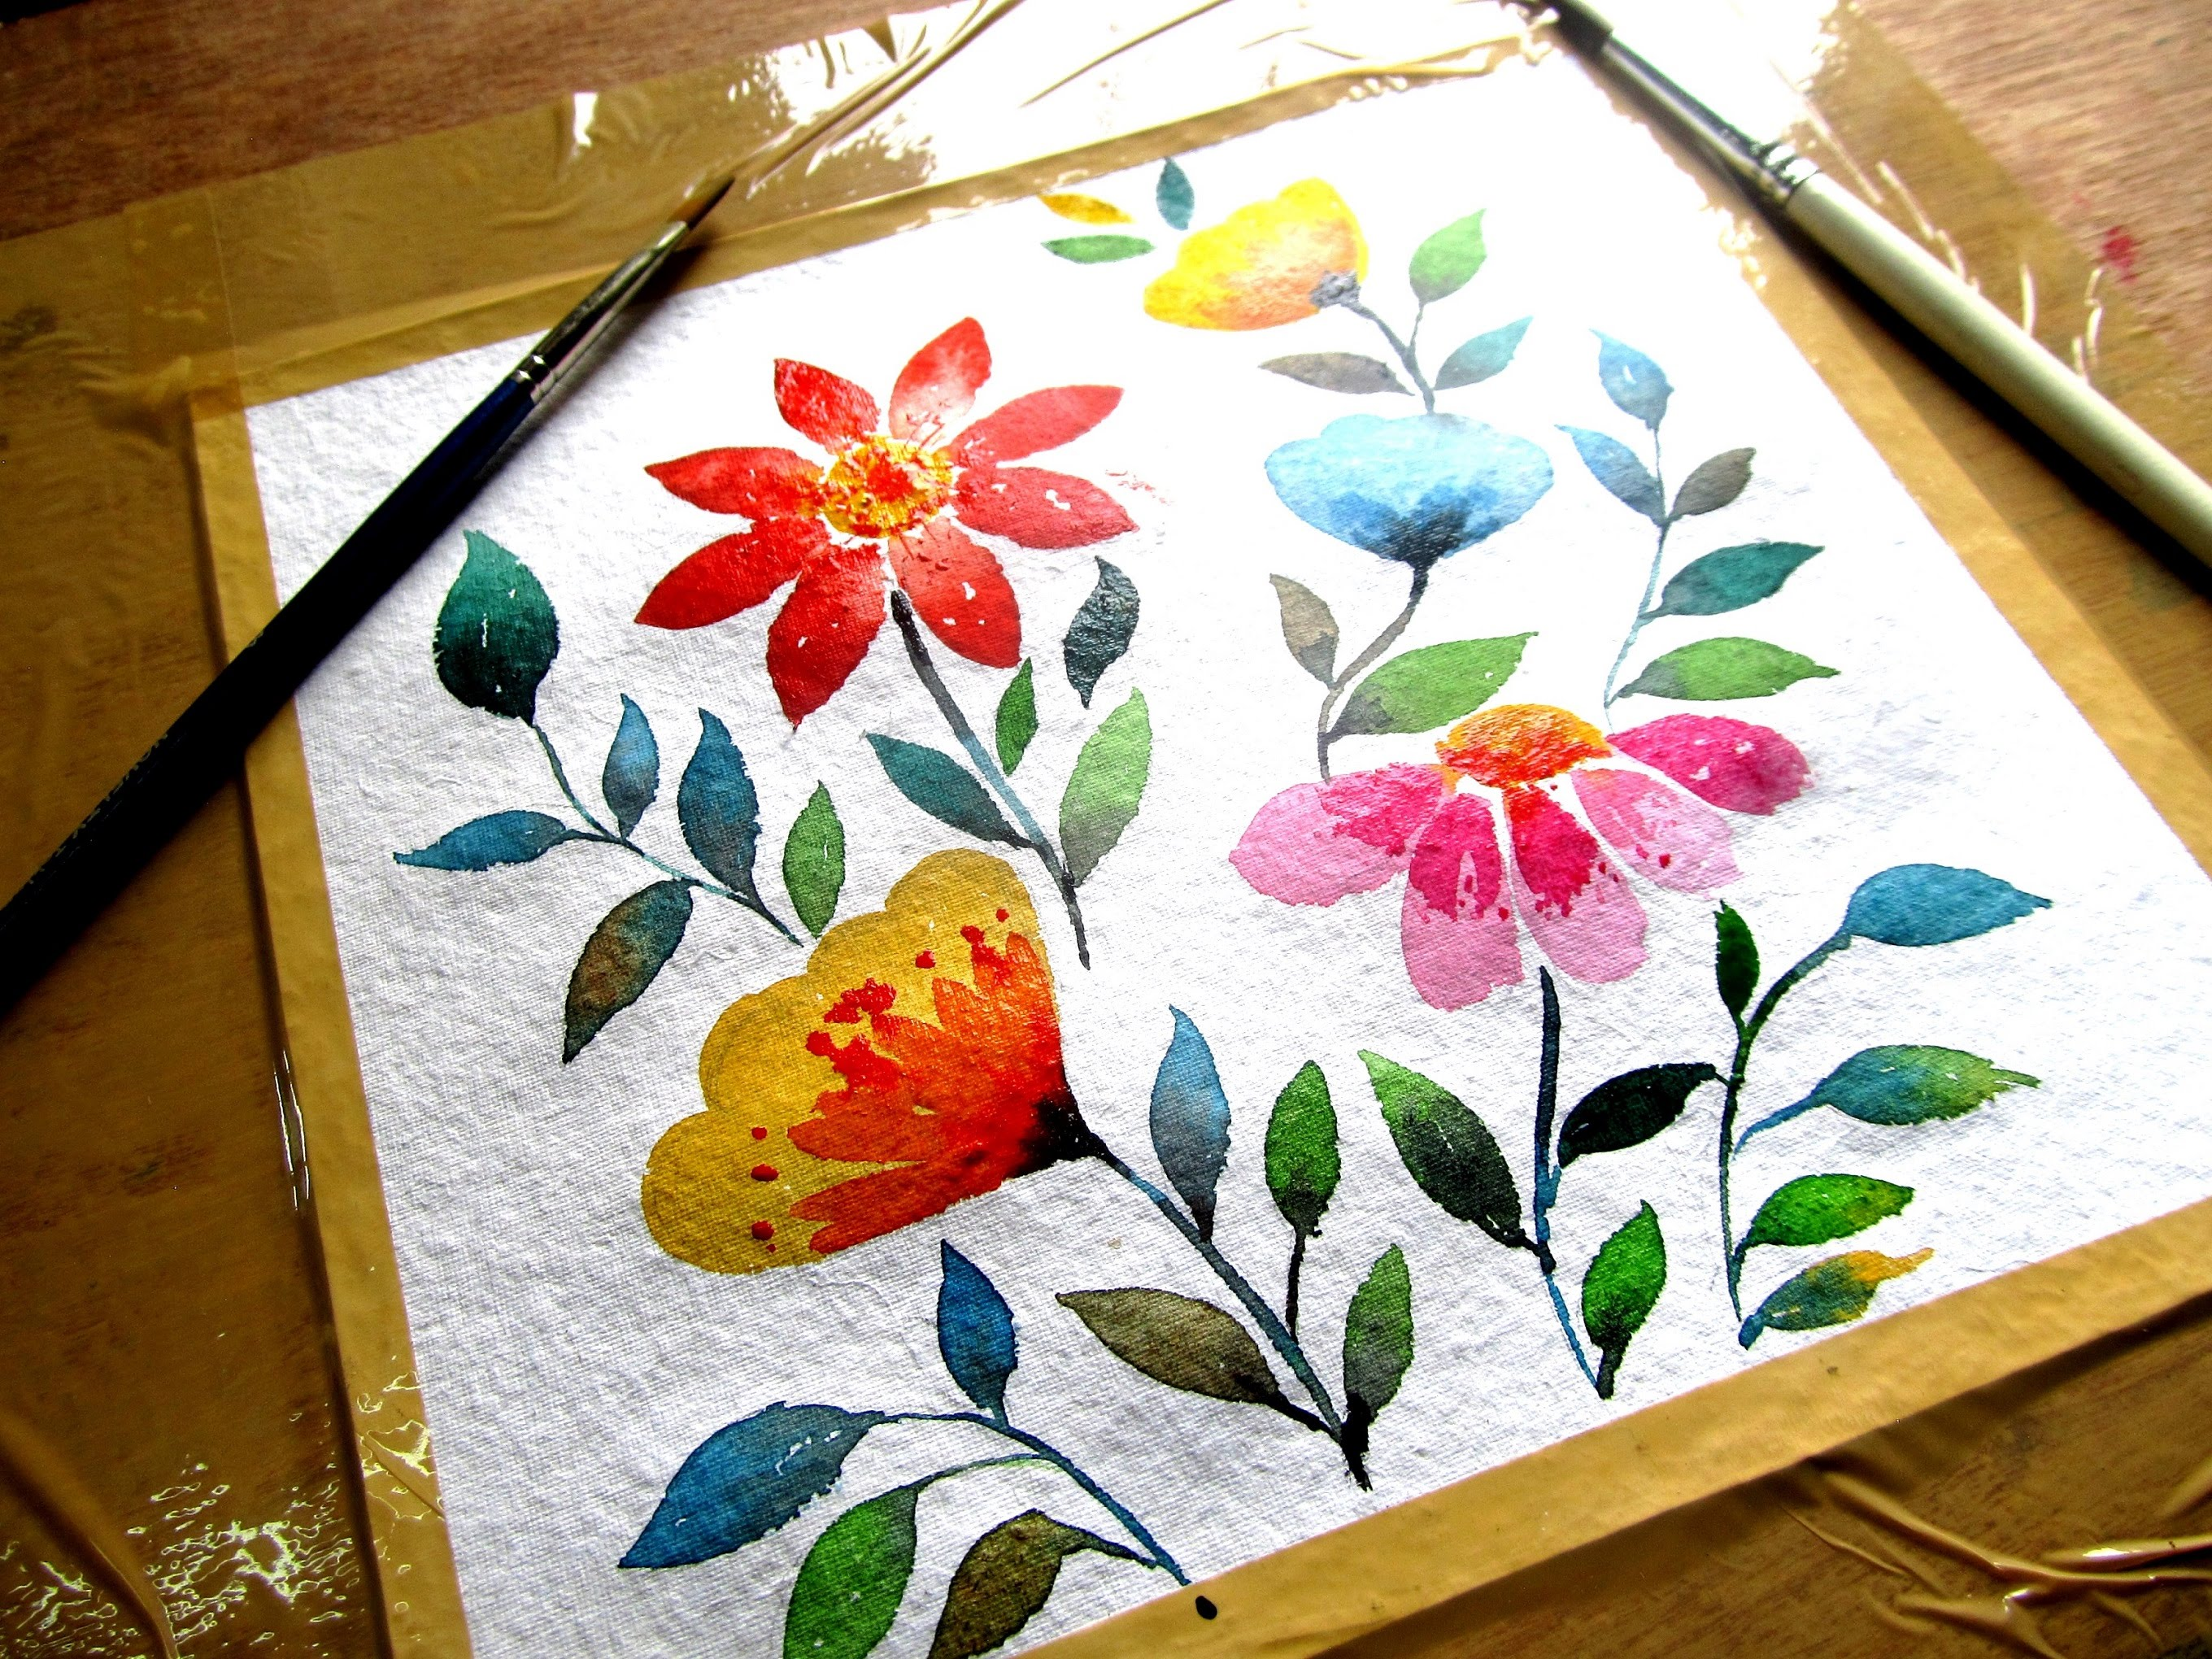 2720x2040 Simple Flower Painting With Watercolor, Watercolor Painting For